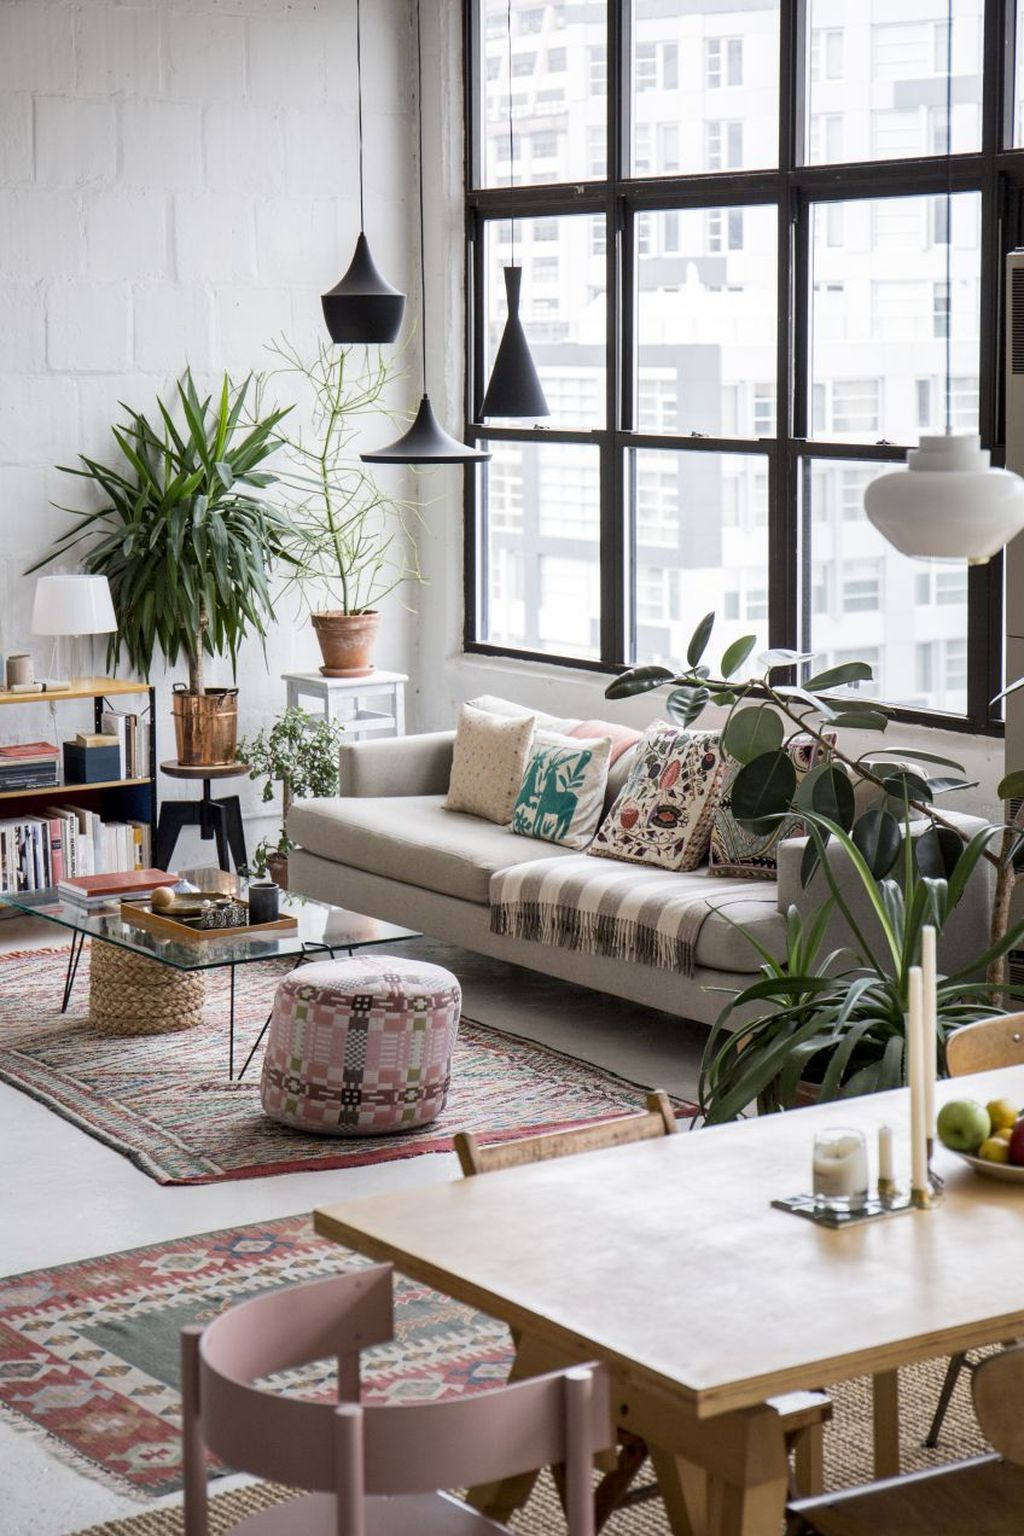 30+ Simple Diy Apartment Decorating Ideas On A Budget in ...